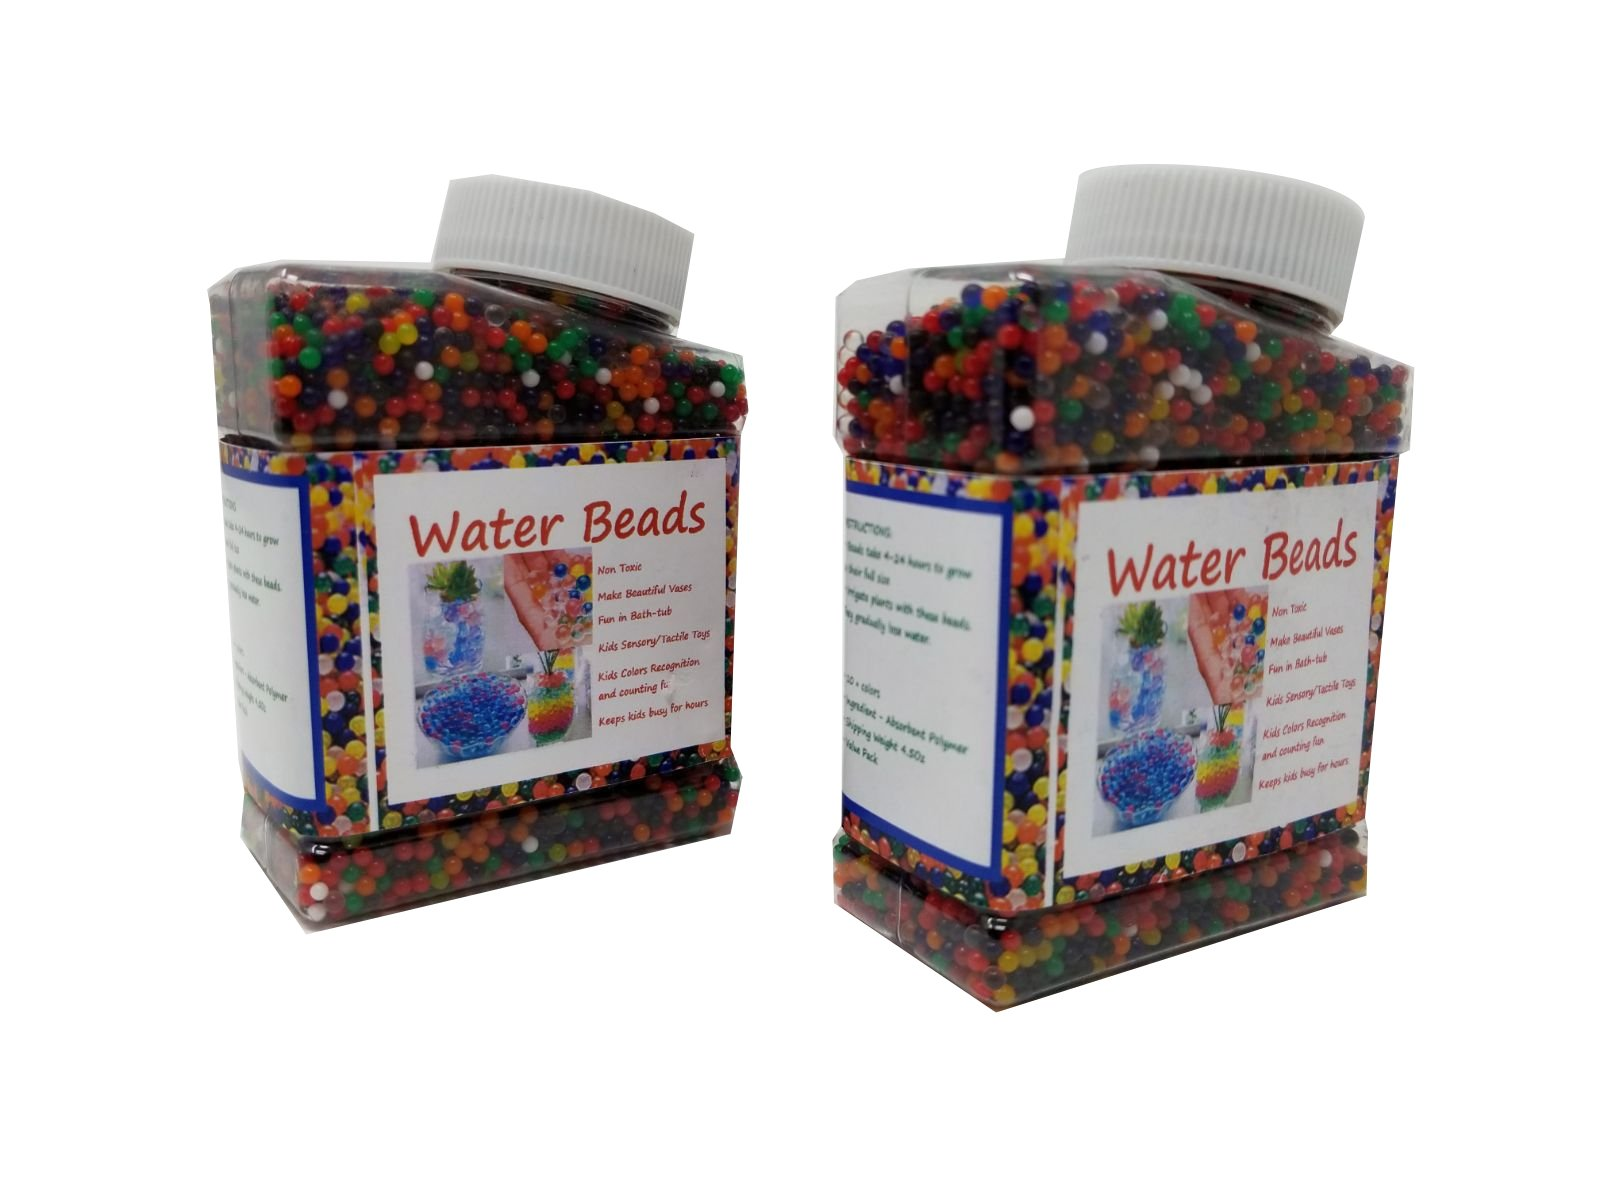 Water Beads Pack (30000 Medium size beads) Rainbow Mix Jelly Water Growing Balls for Kids Tactile Sensory Toys, Vases, Plants, Wedding and Home Decoration (2 bottles)